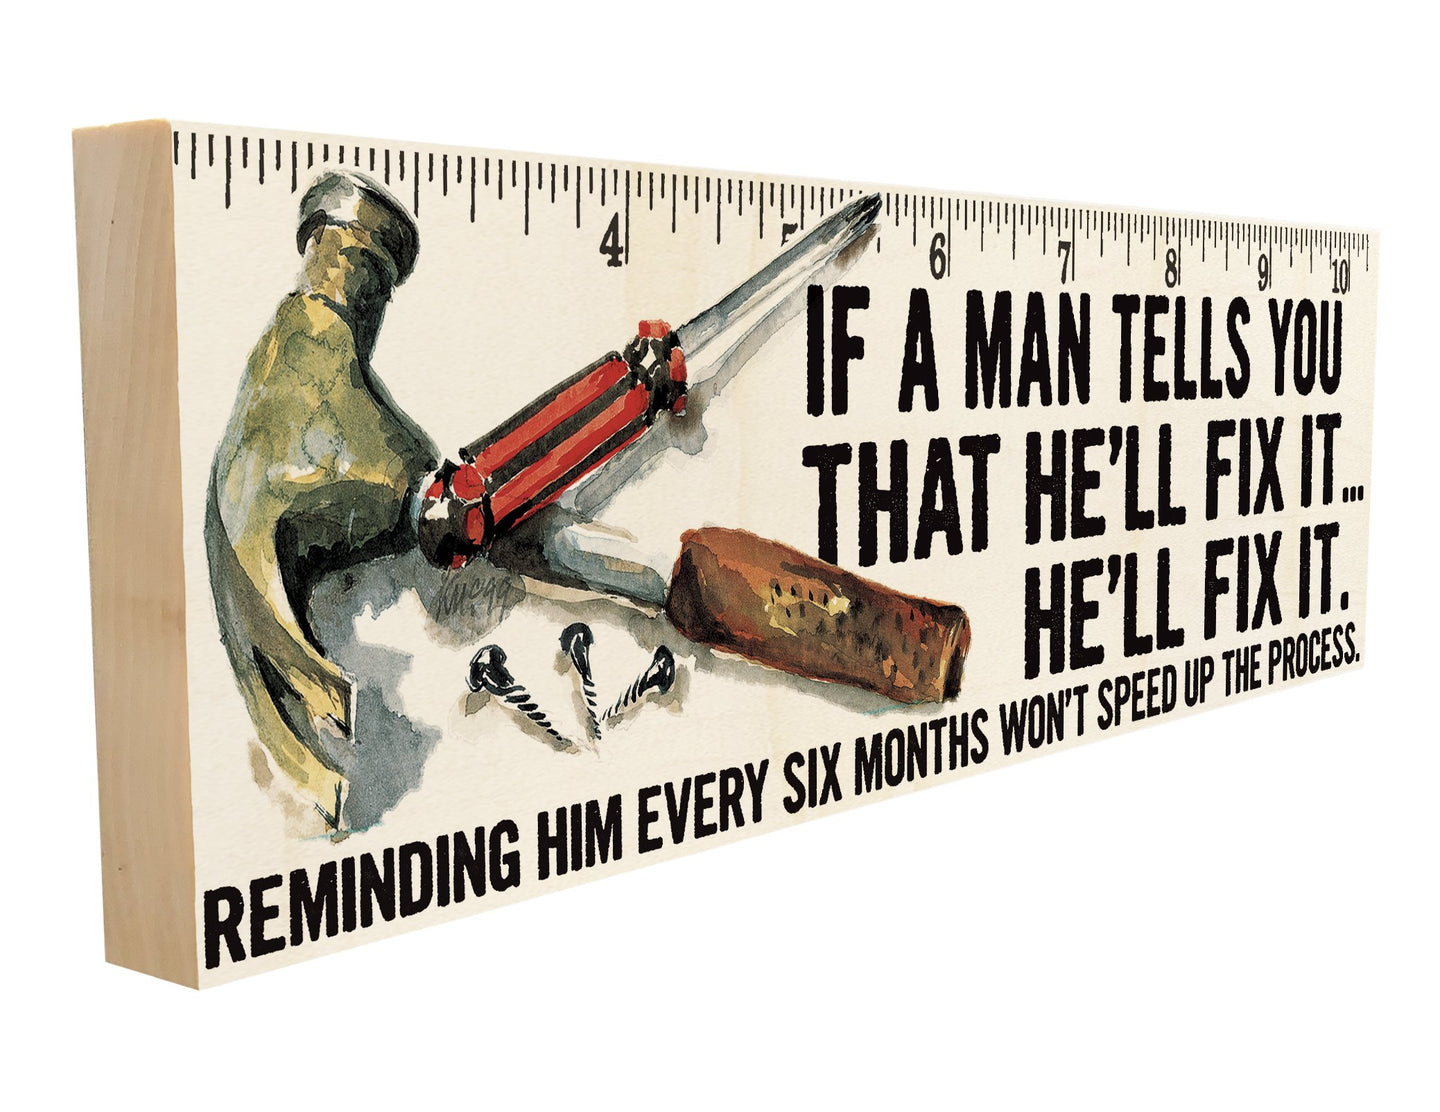 If a Man Tells You That He'll Fix It, He'll Fix It. Reminding Him Every Six Months won't Speed Up the Process.